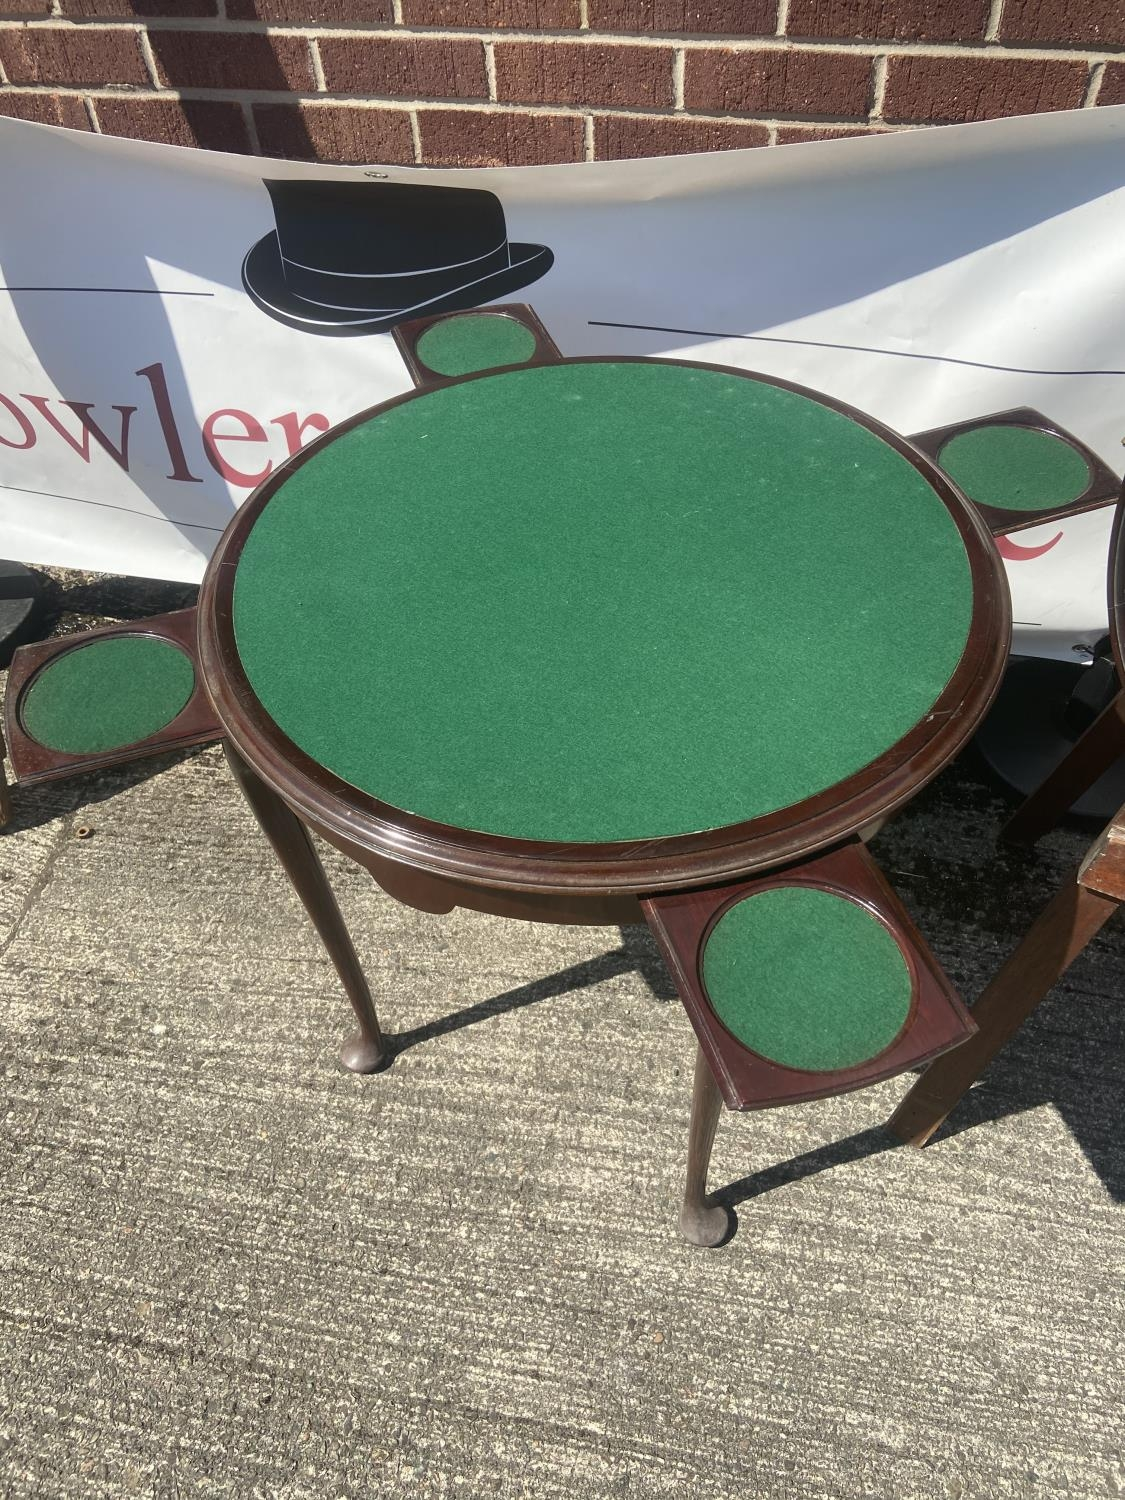 Antique card table/serving table [75x67cm] - Image 4 of 4